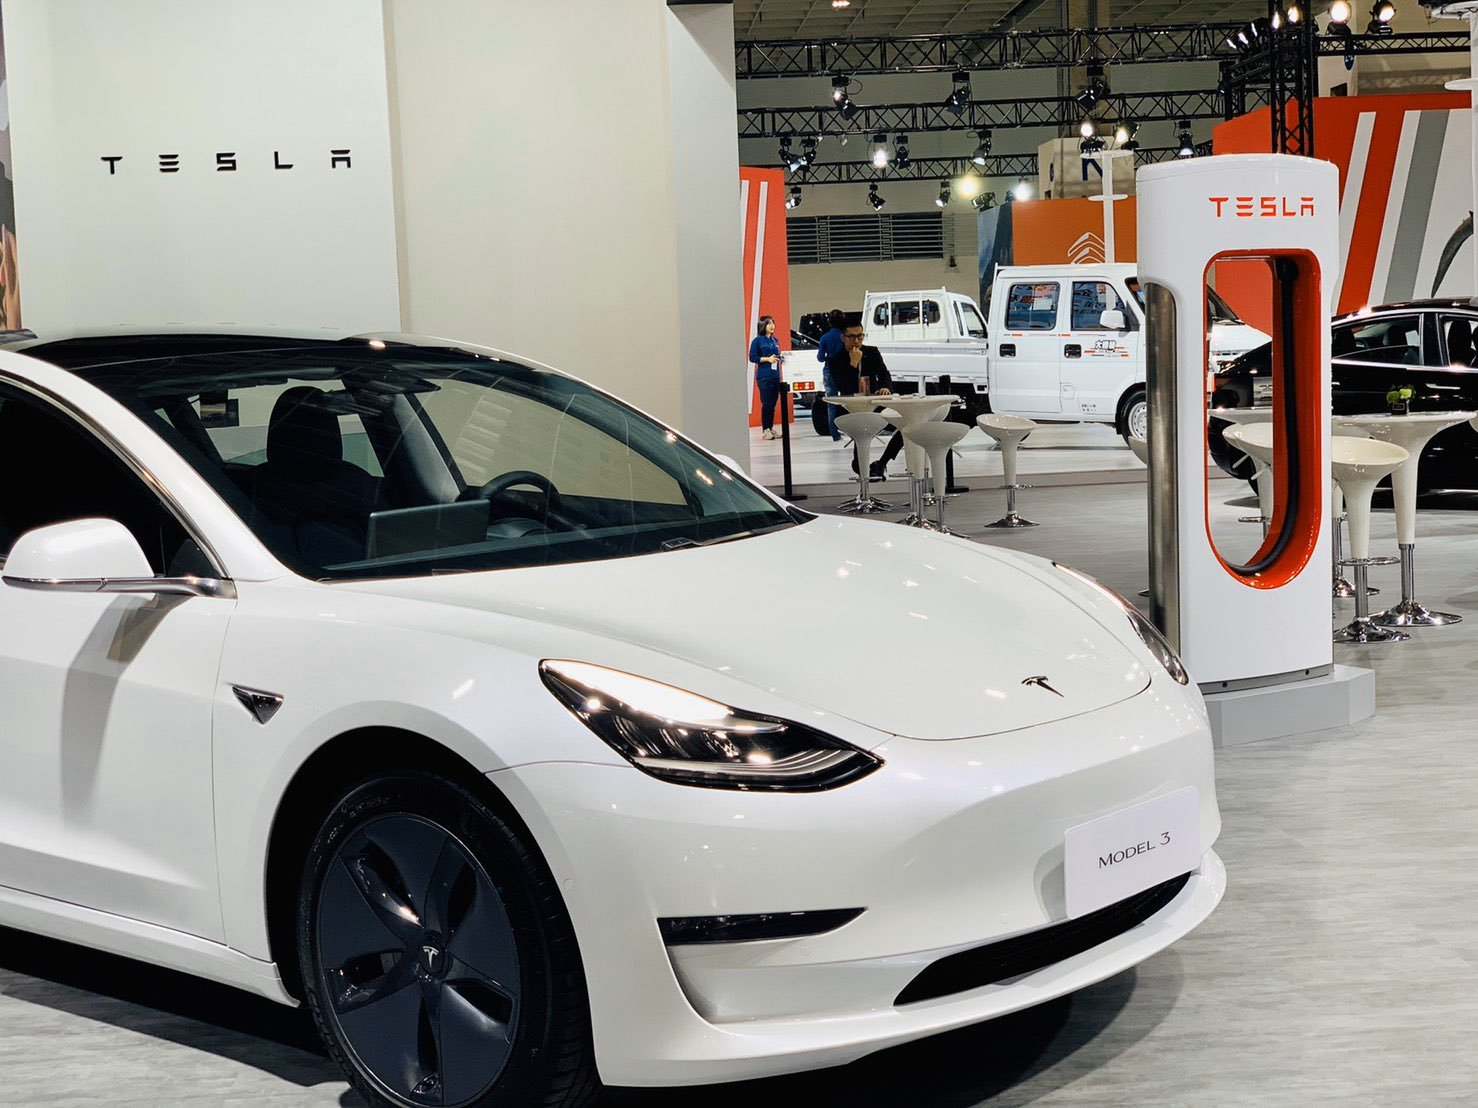 Tesla is gaining momentum in Taiwan